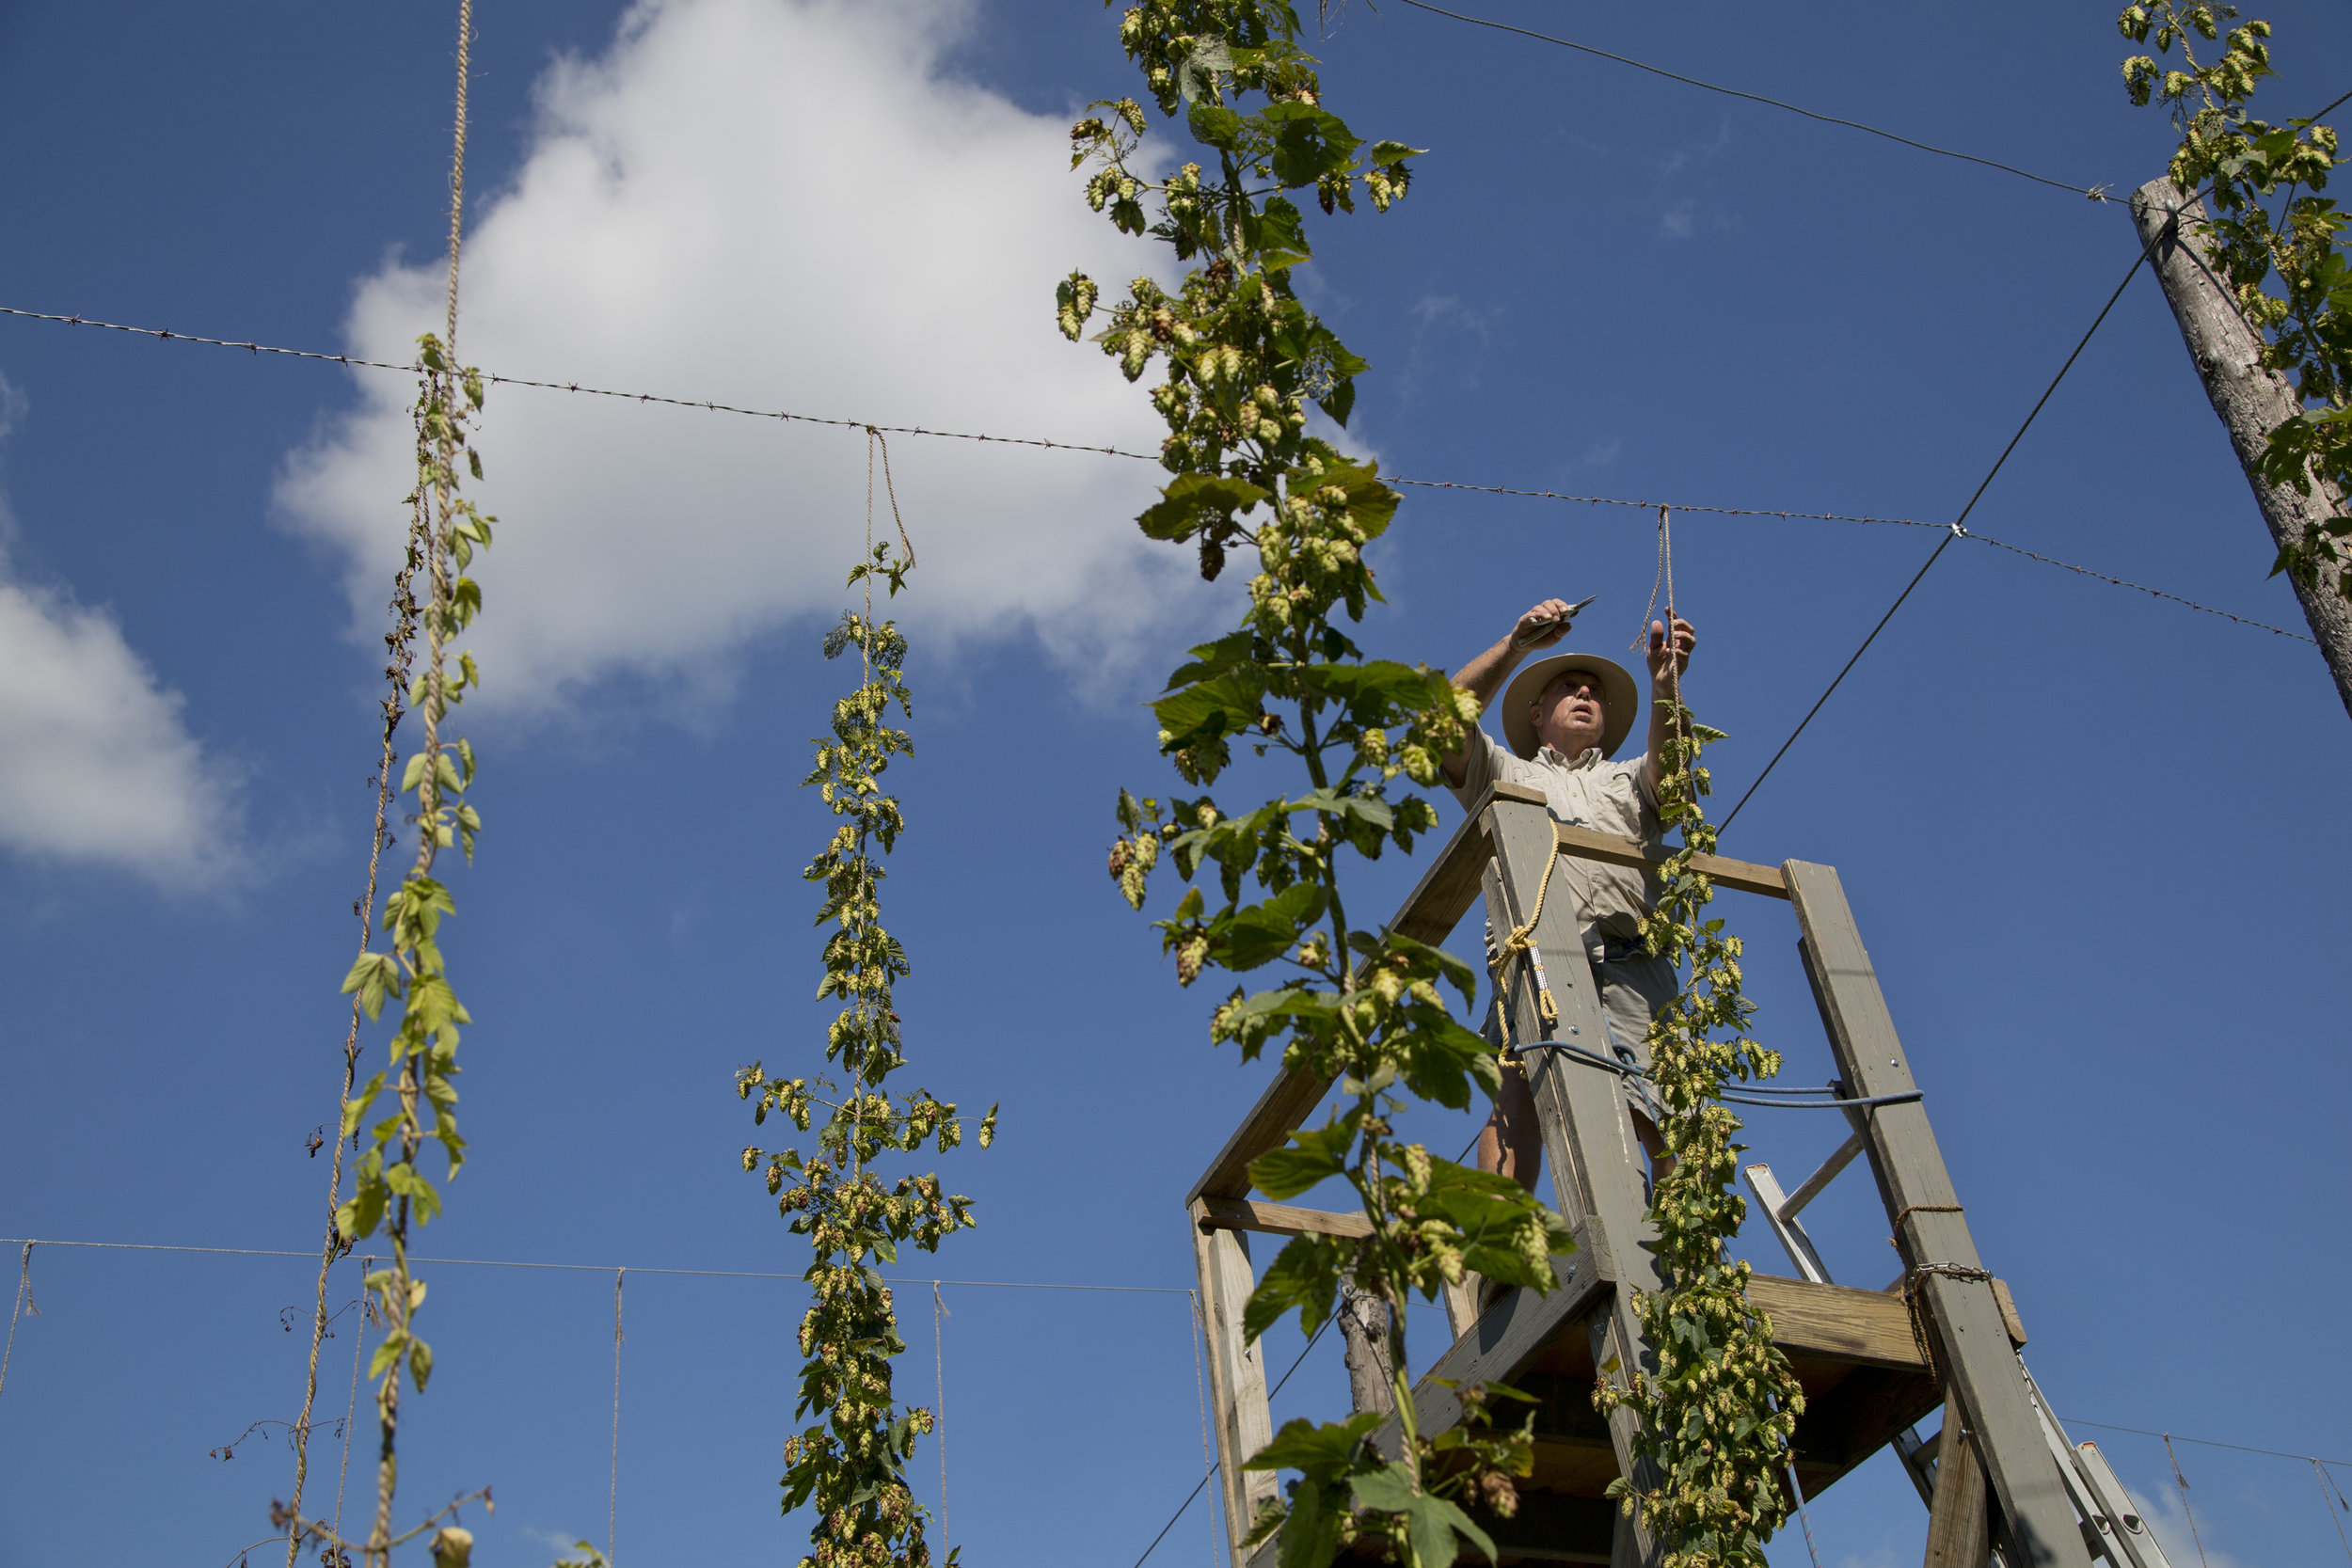 Dean Vonderheide of Jasper harvested Cascade hops at White River Hops farm in Haysville on Thursday. Cascade is one of the most popular hops variety for craft beer brewers. This is Vonderheide's second year growing hops.